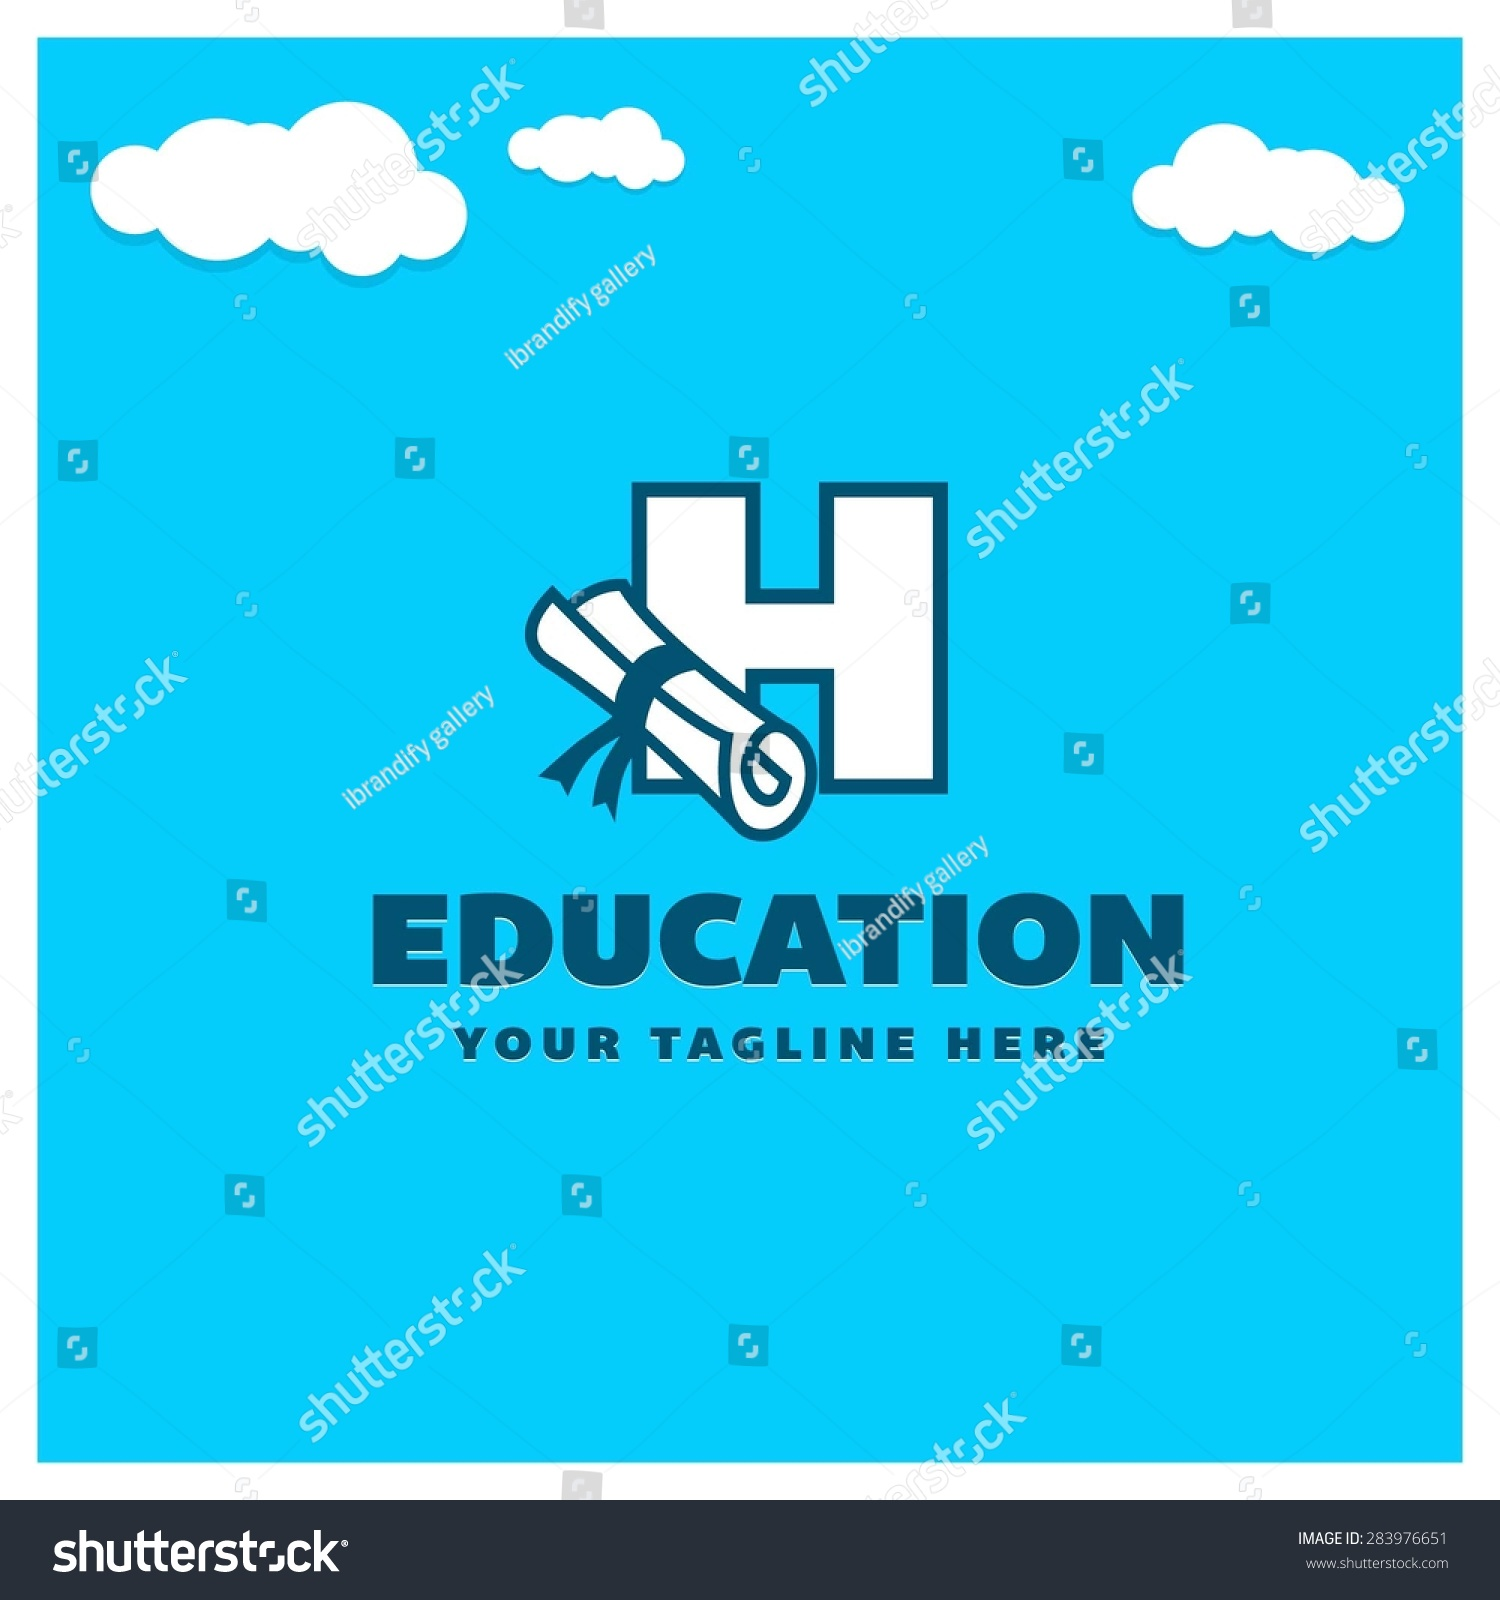 H tag background image - Education Letter H Logo University Logo Template On Blue Cloud Background Place For Company